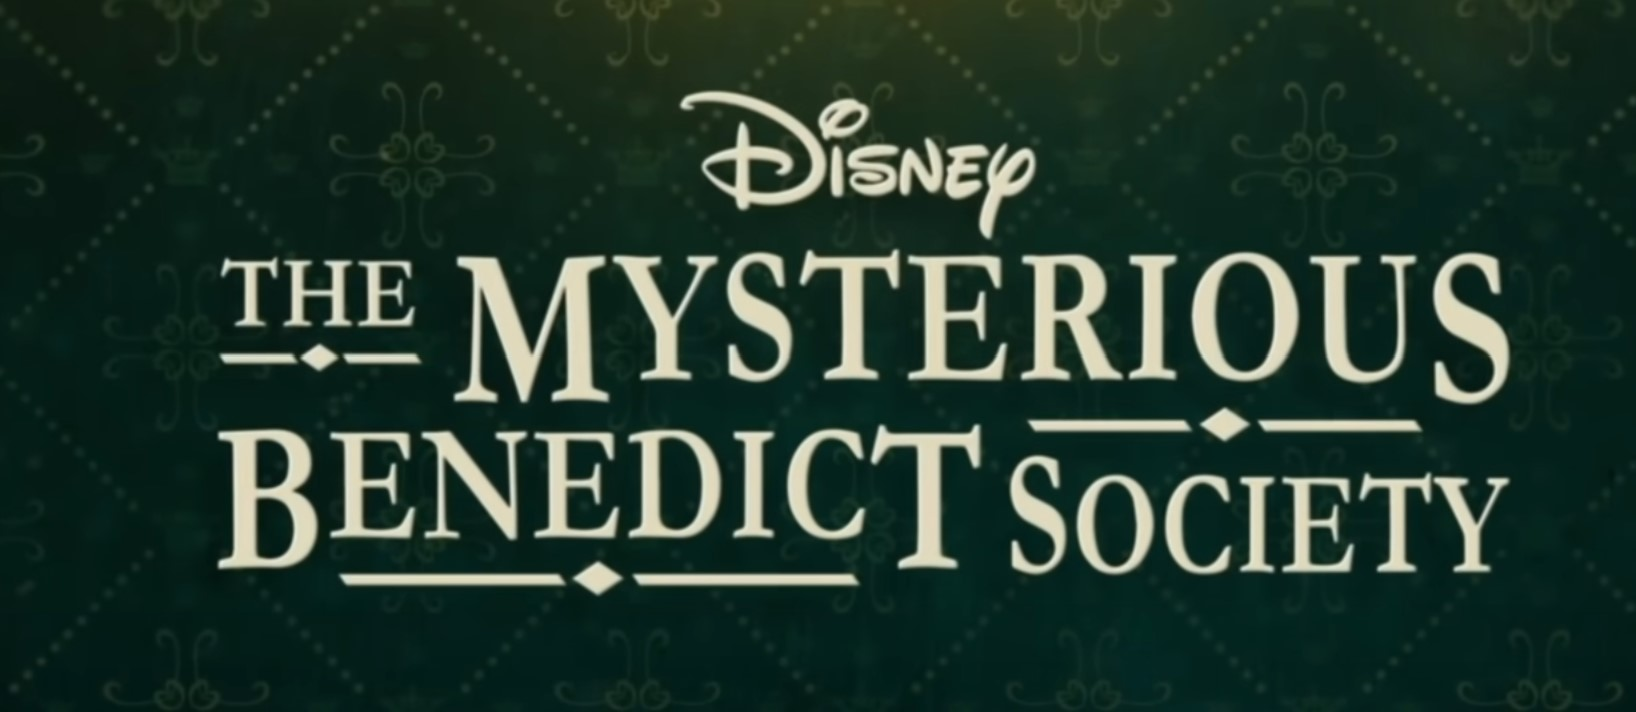 Disney Plus' The Mysterious Benedict Society: Episode List & Review